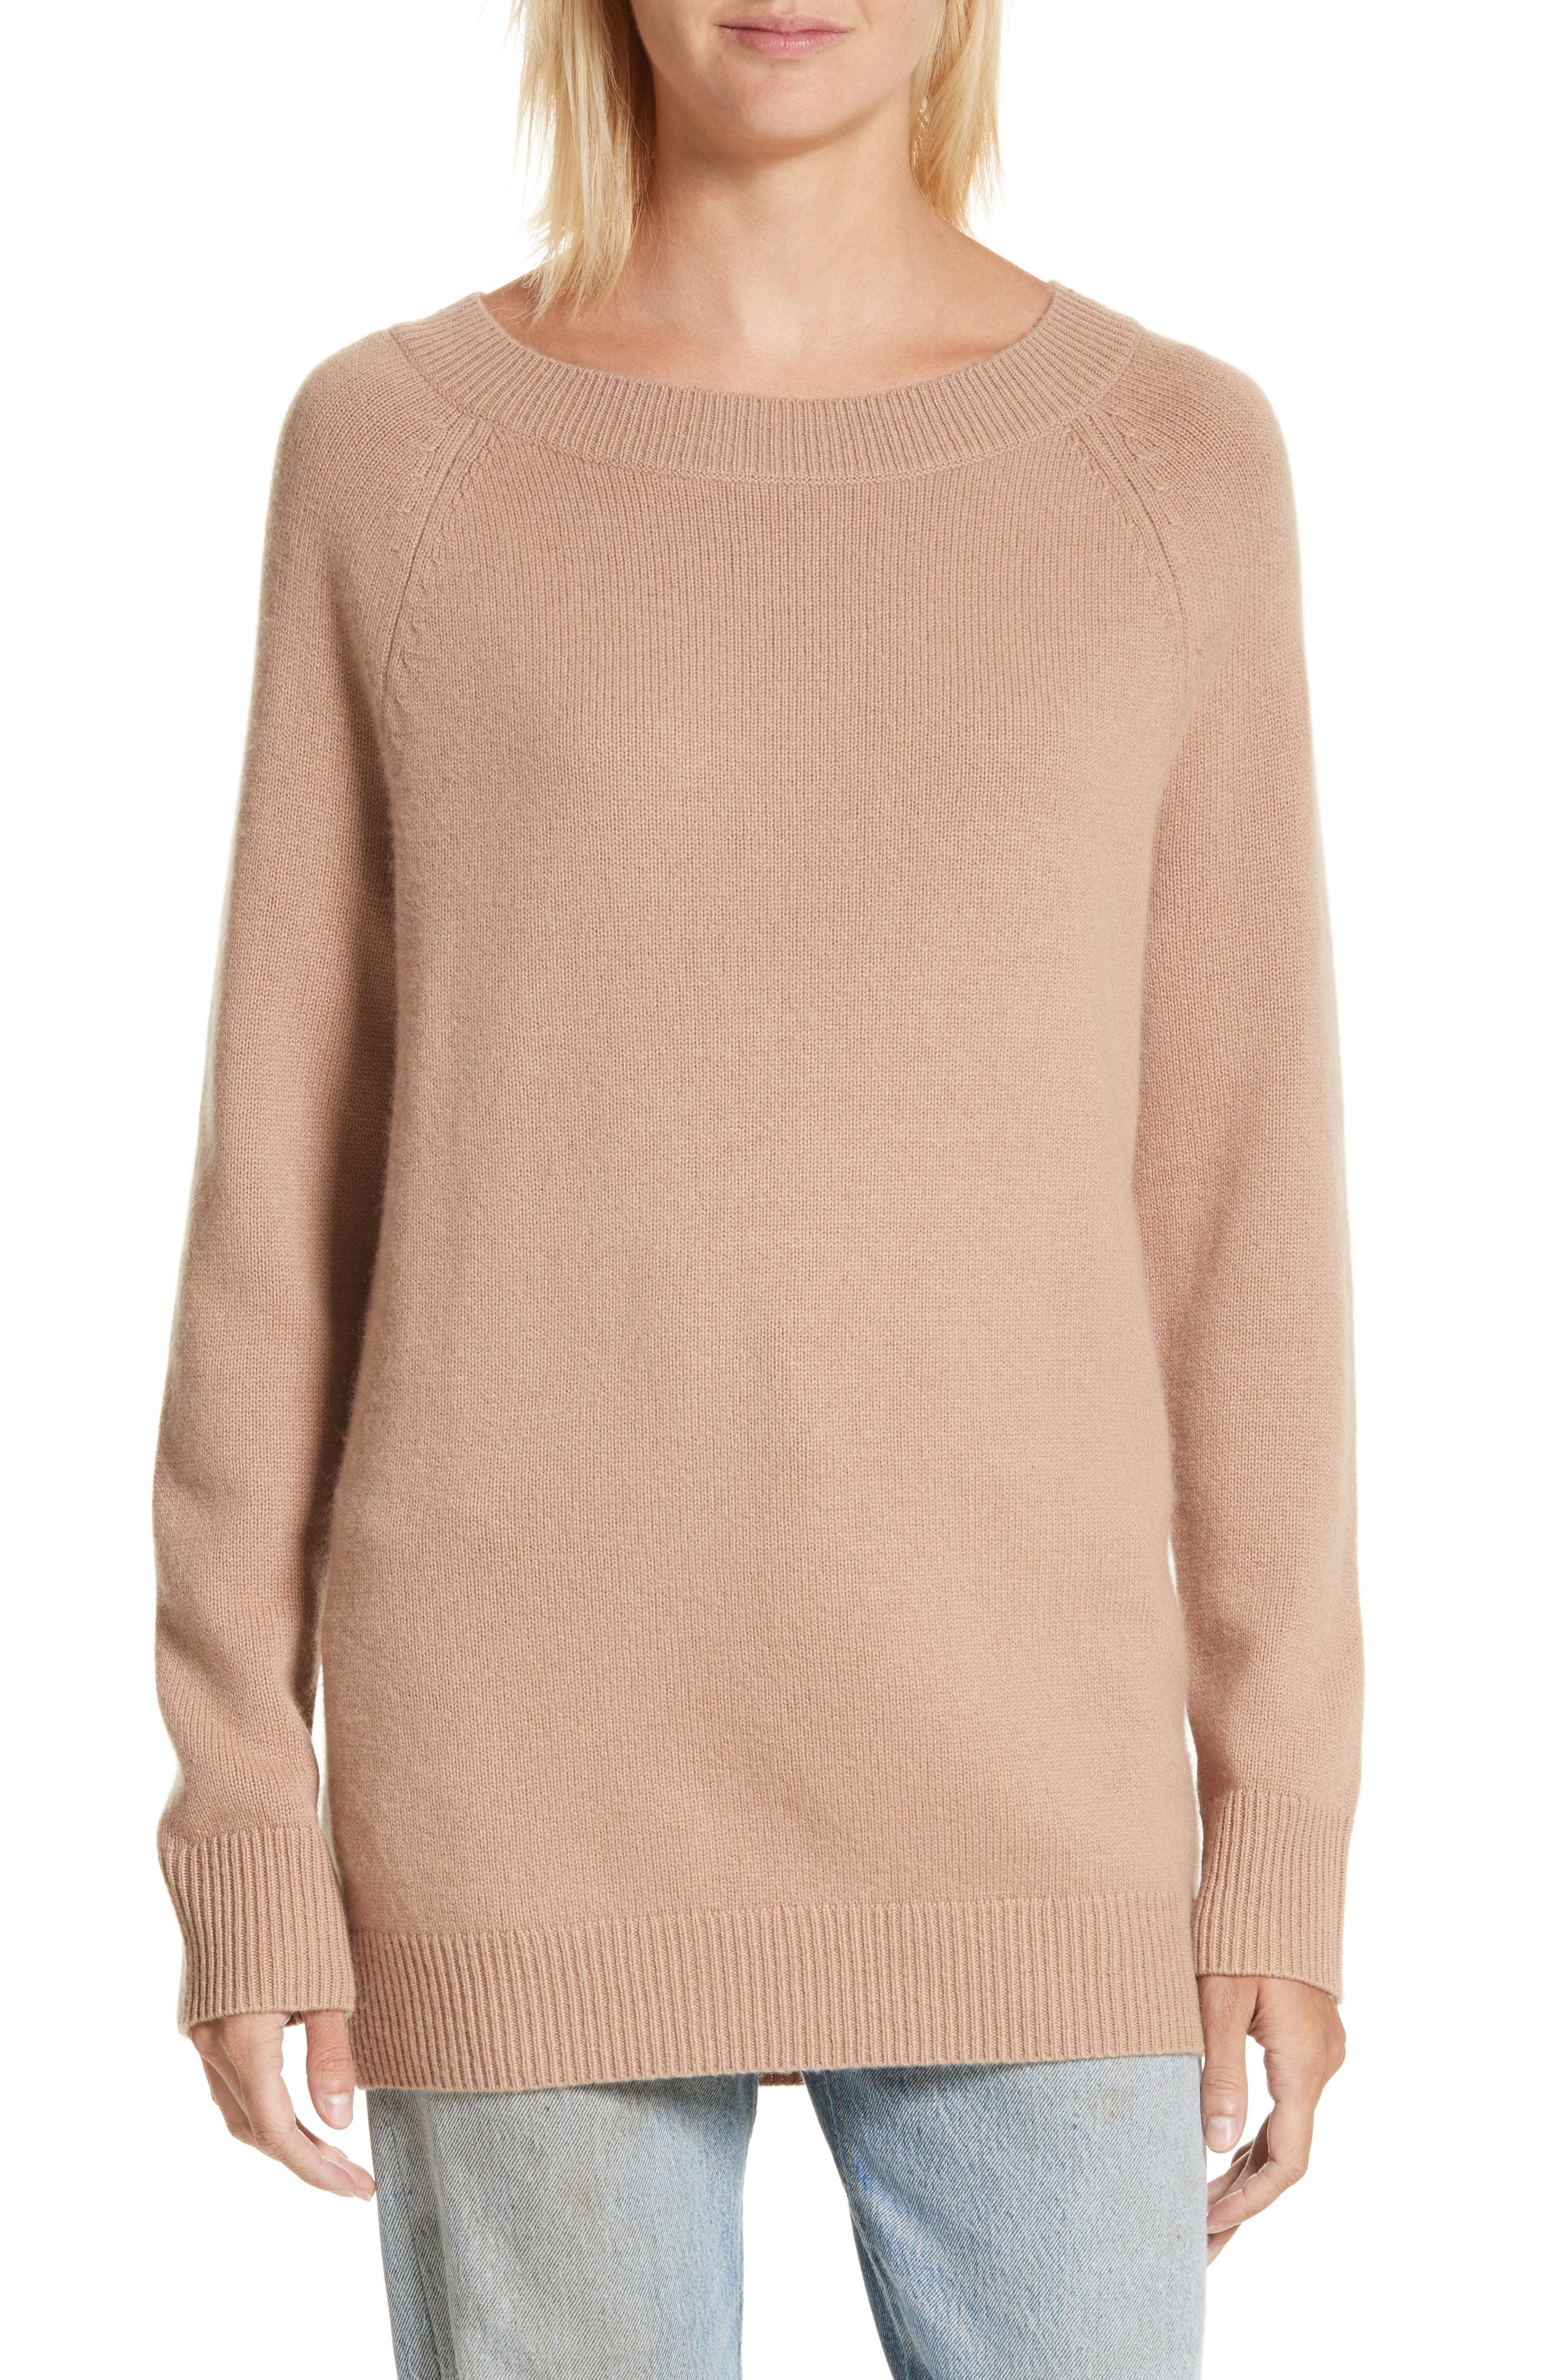 Cody Wool & Cashmere Boatneck Sweater,                         Main,                         color, 200